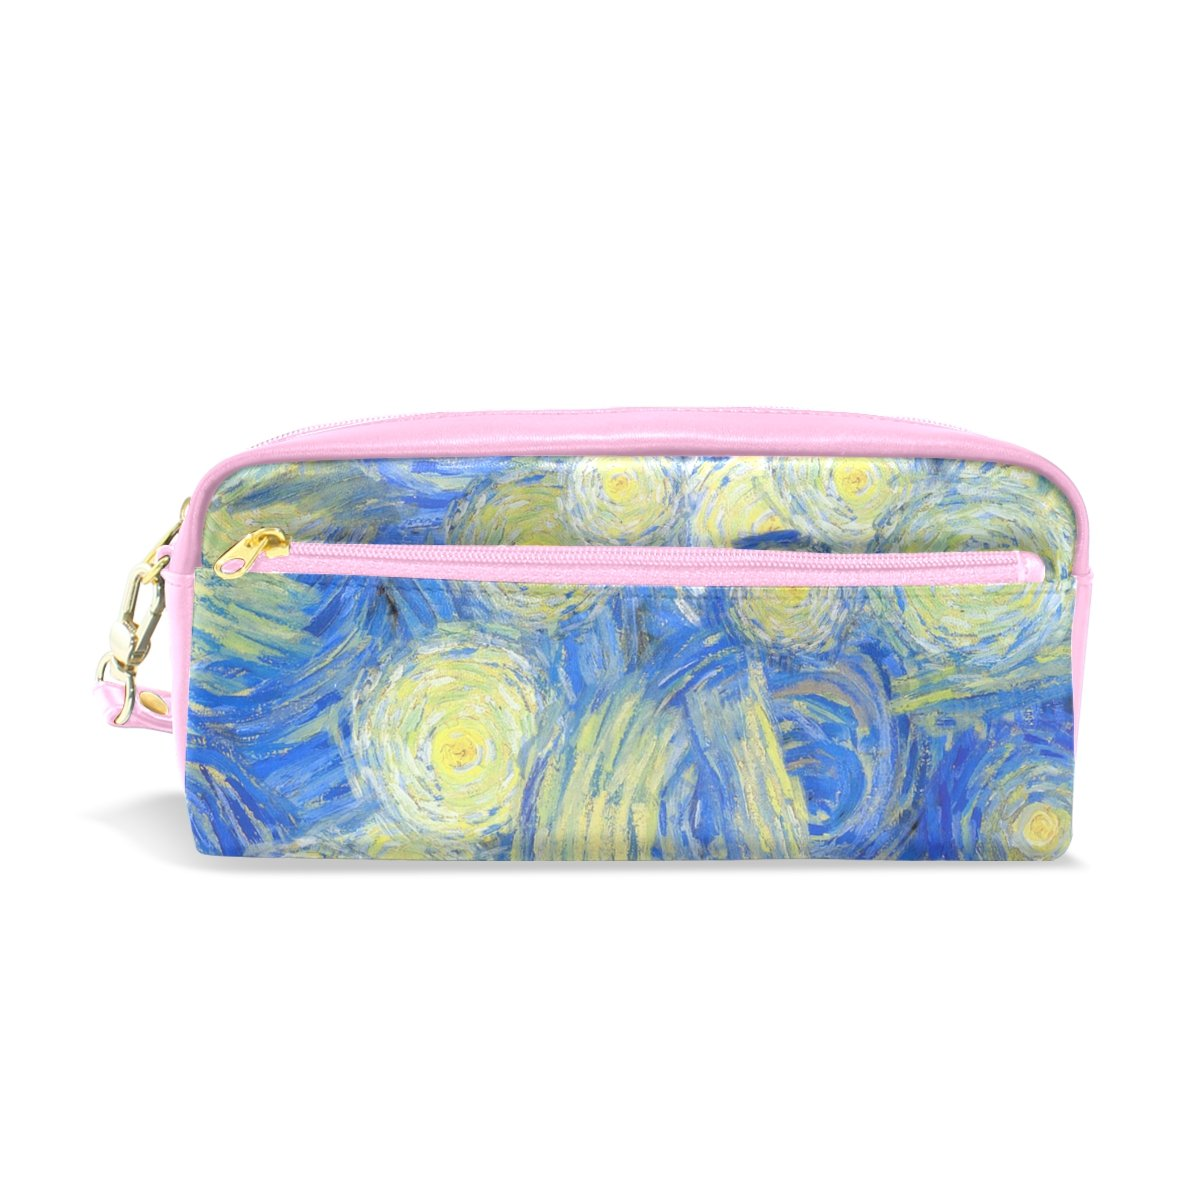 My Little Nest Colorful Oil Paints Print Cosmetic Makeup Bag Pencil Case Multi Function School Office Organizer Bag with Zipper Closure